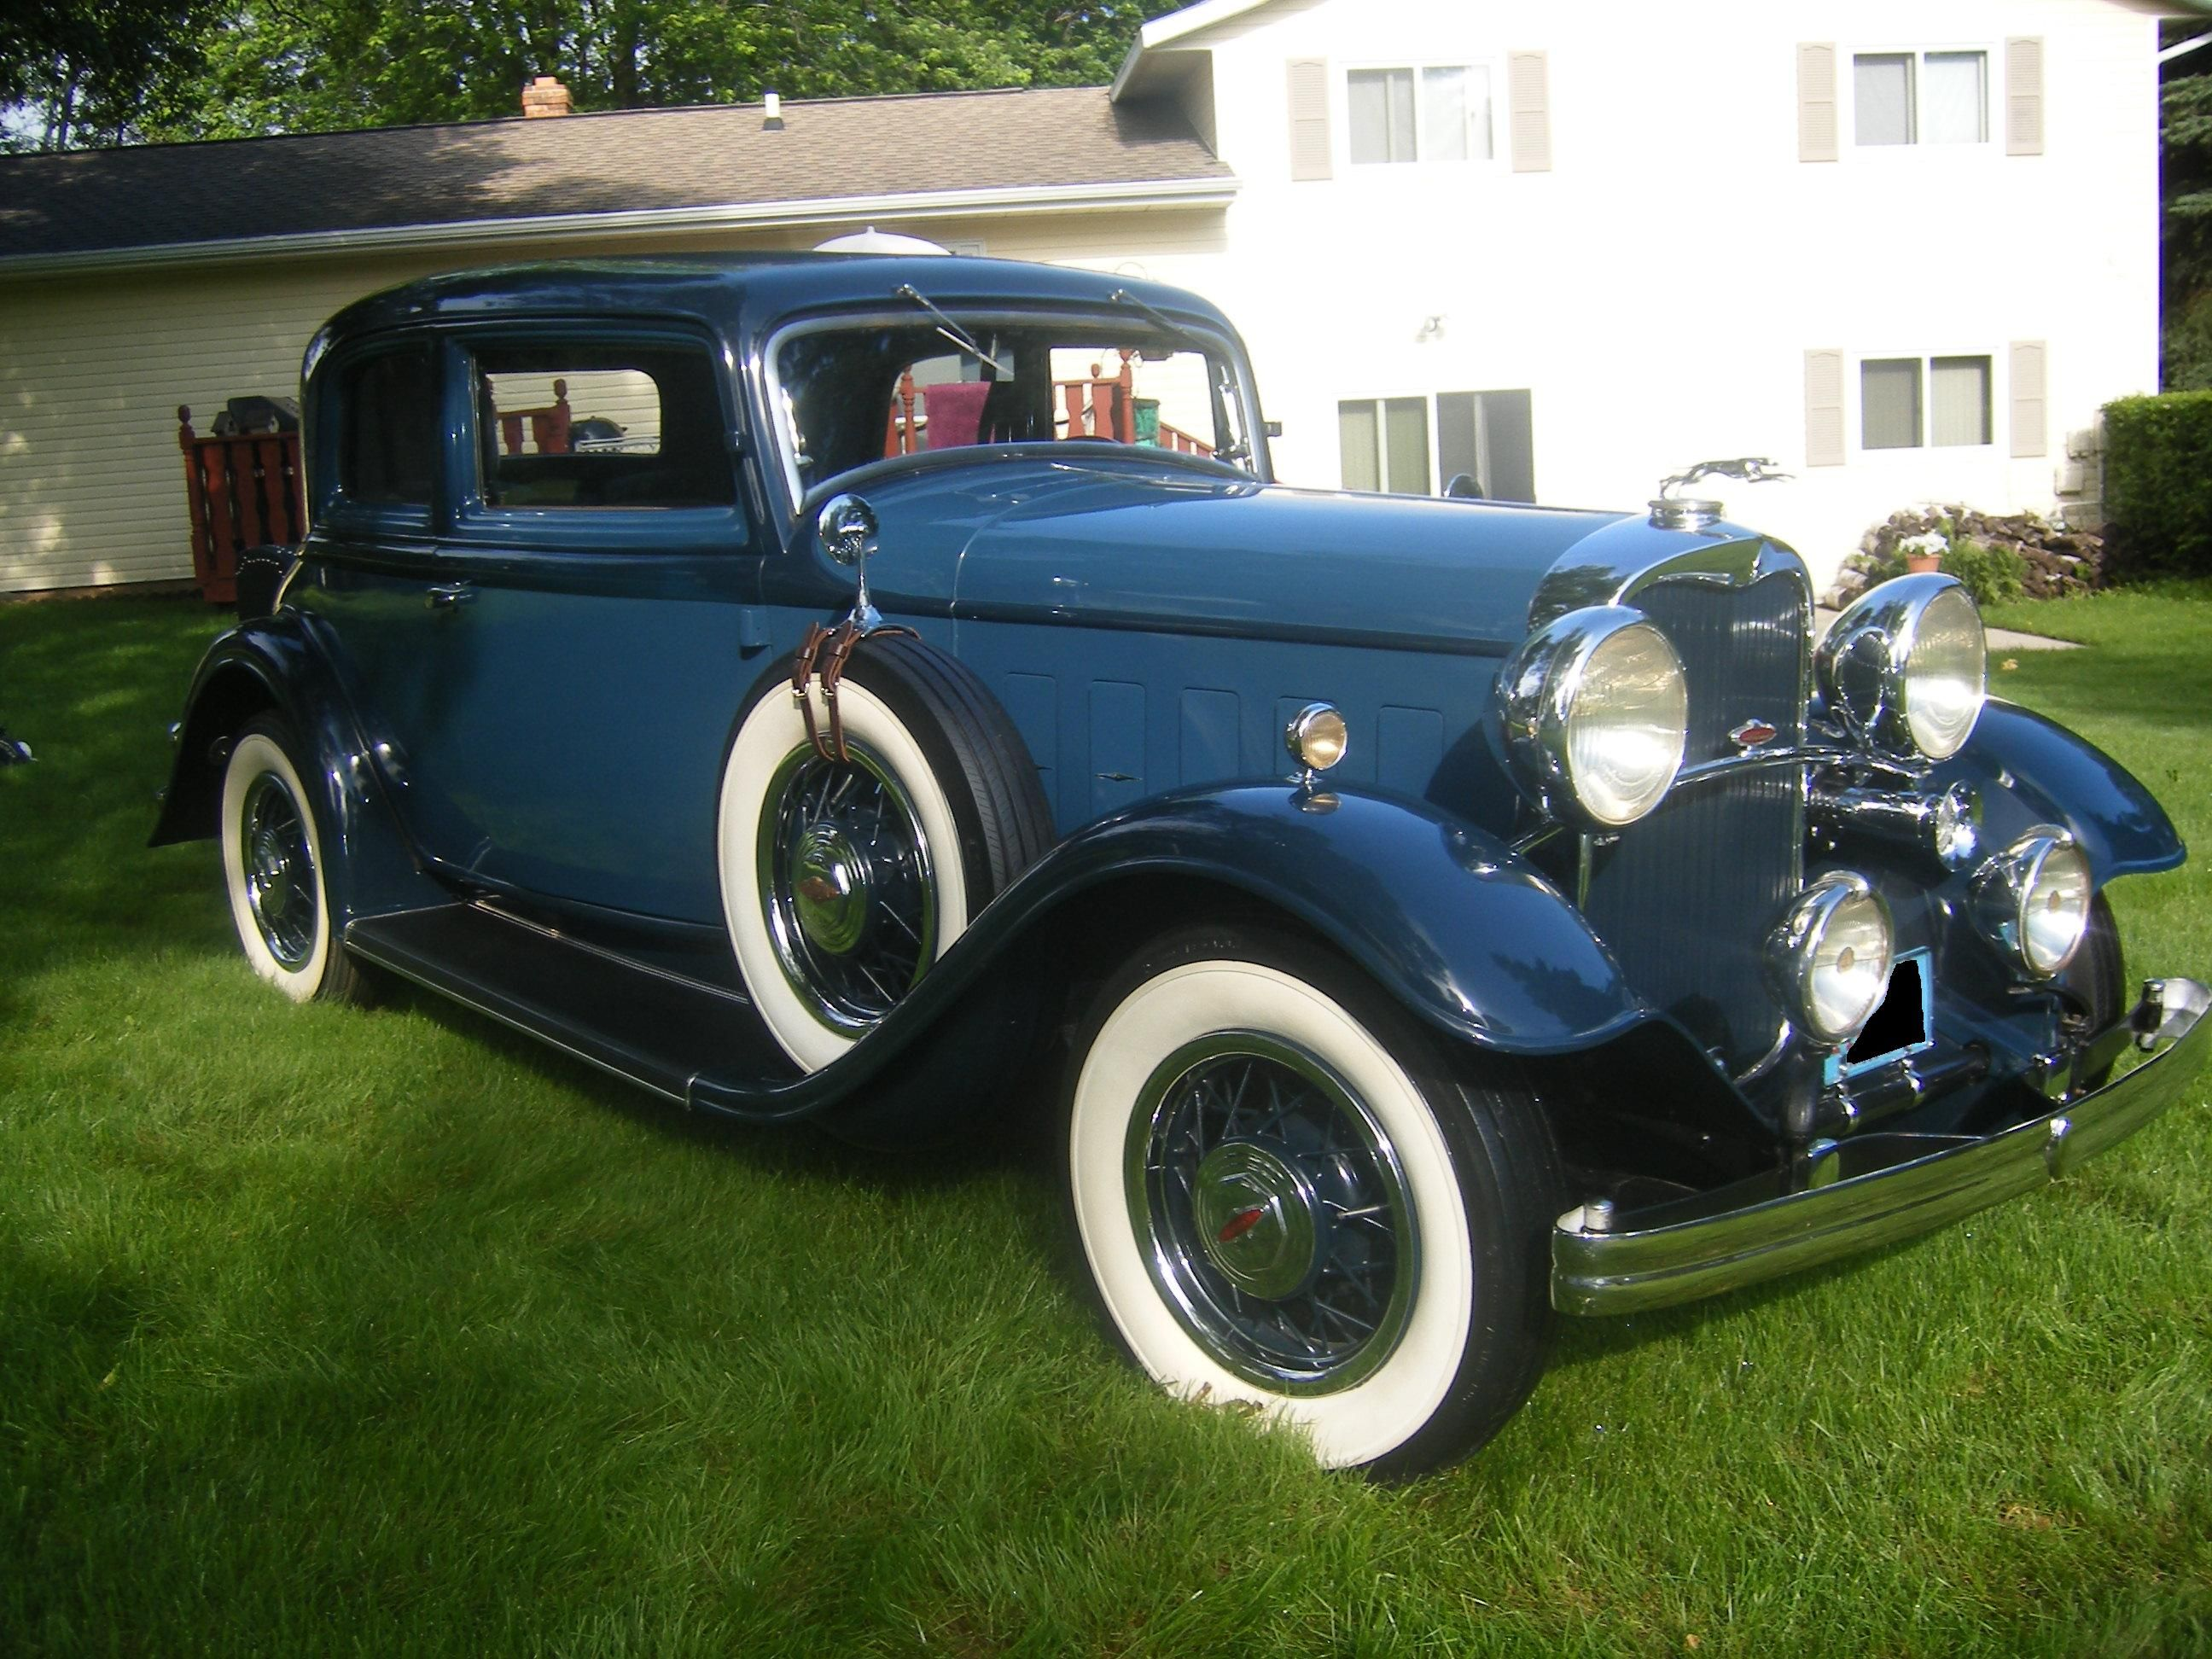 1932 Lincoln KA Victoria Very rare investment quality car - $75,000 ...